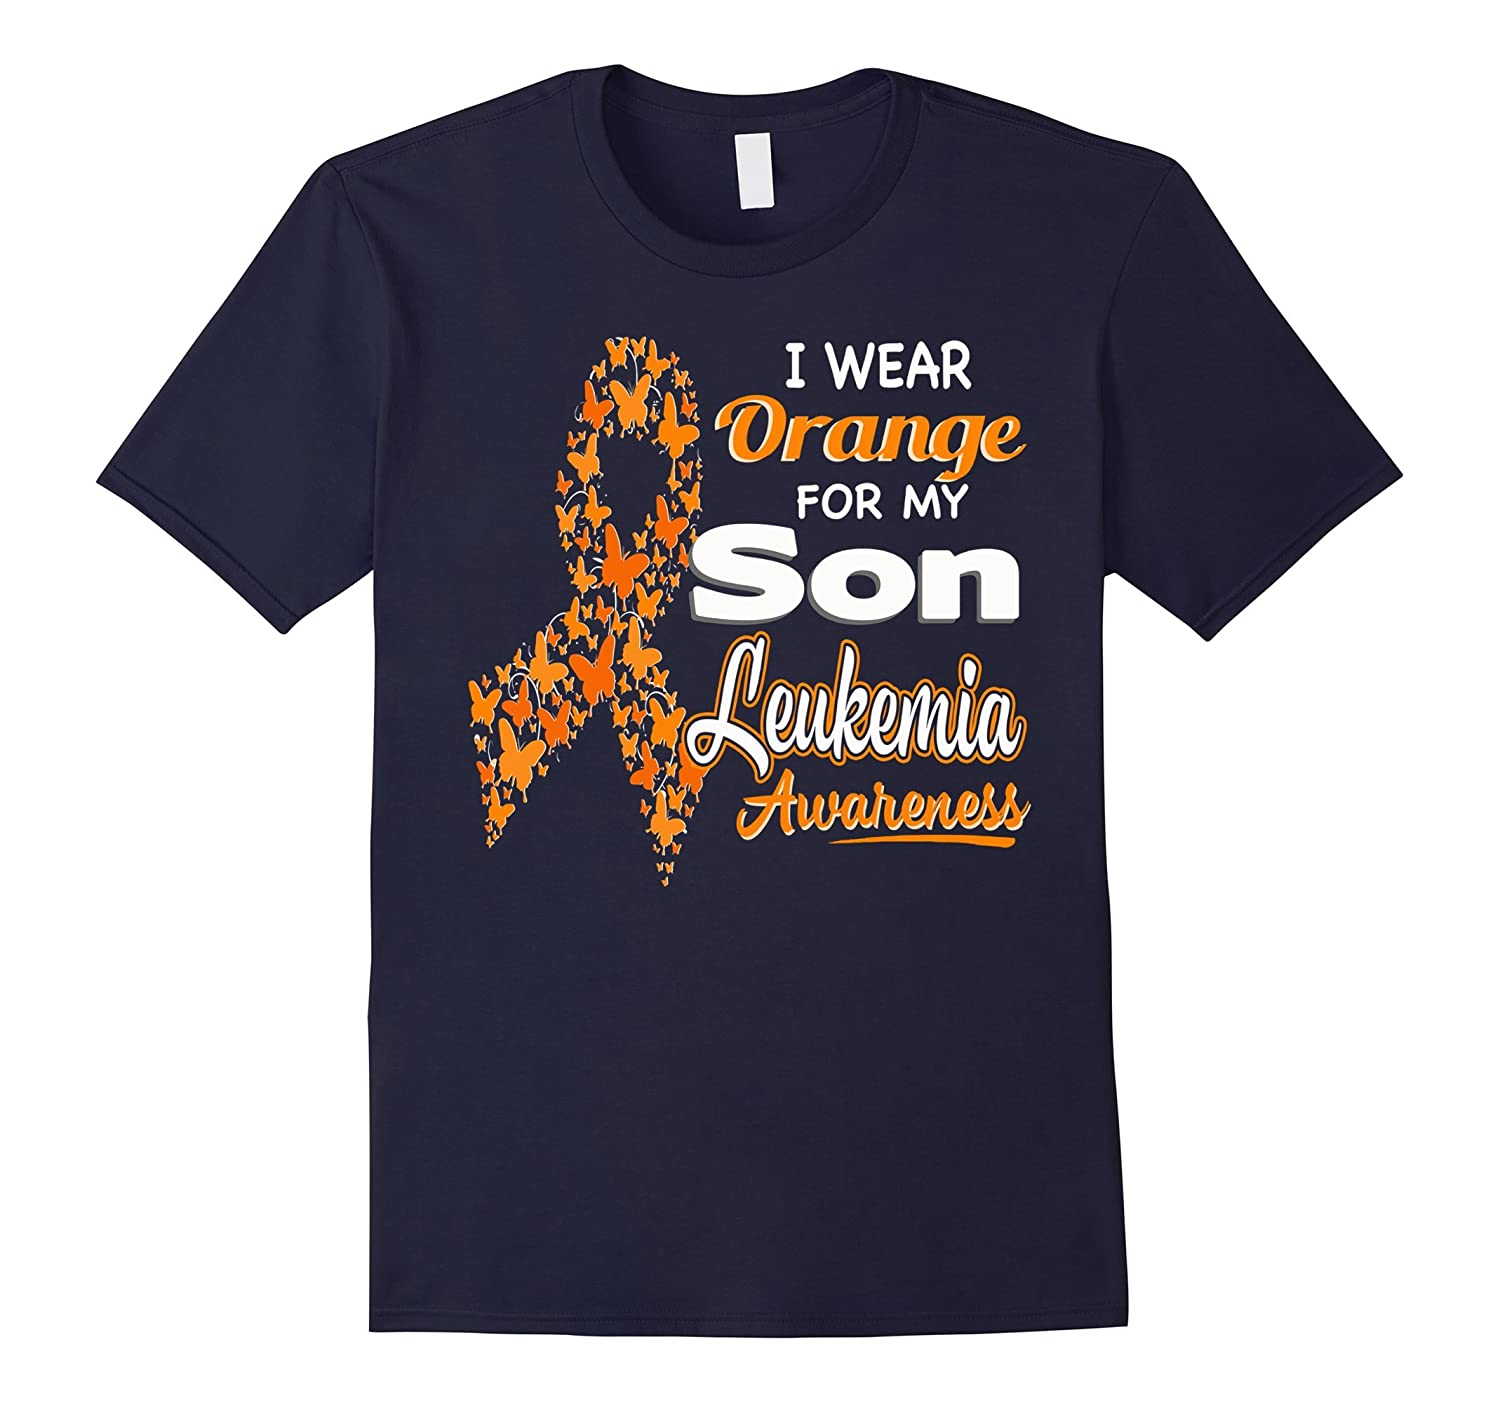 I wear Orange for my Son – Leukemia Awareness shirt